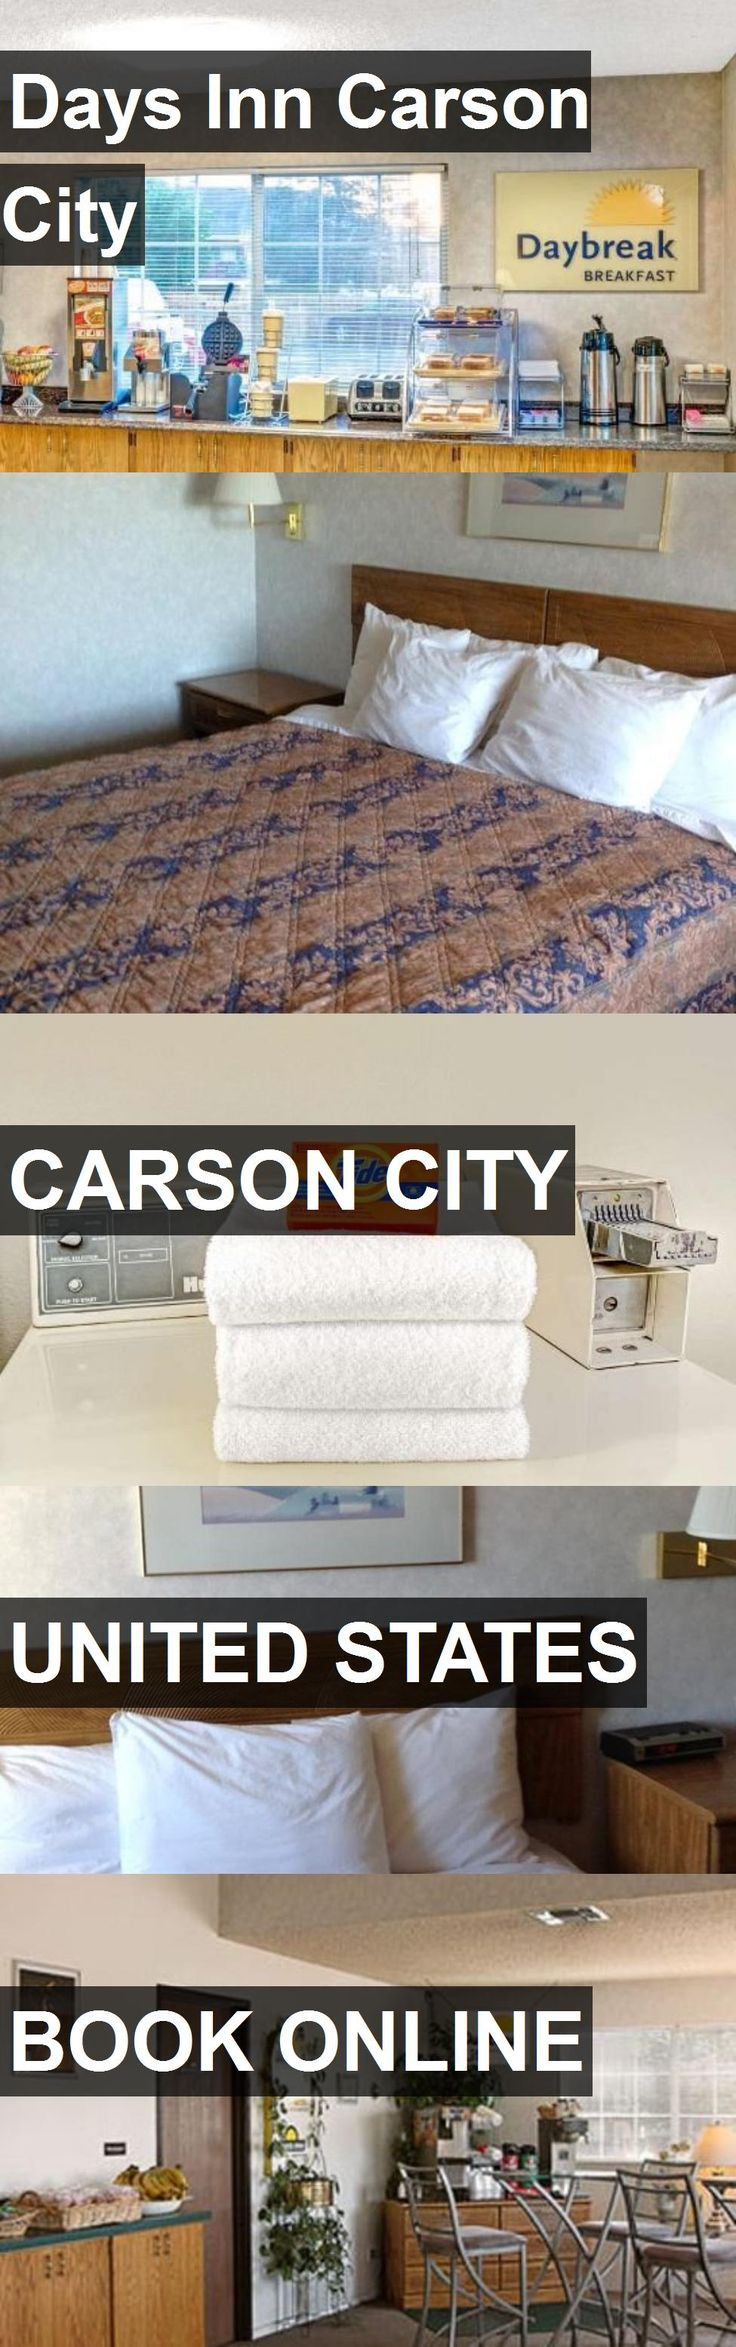 Hotel Days Inn Carson City in Carson City, United States. For more information, photos, reviews and best prices please follow the link. #UnitedStates #CarsonCity #DaysInnCarsonCity #hotel #travel #vacation